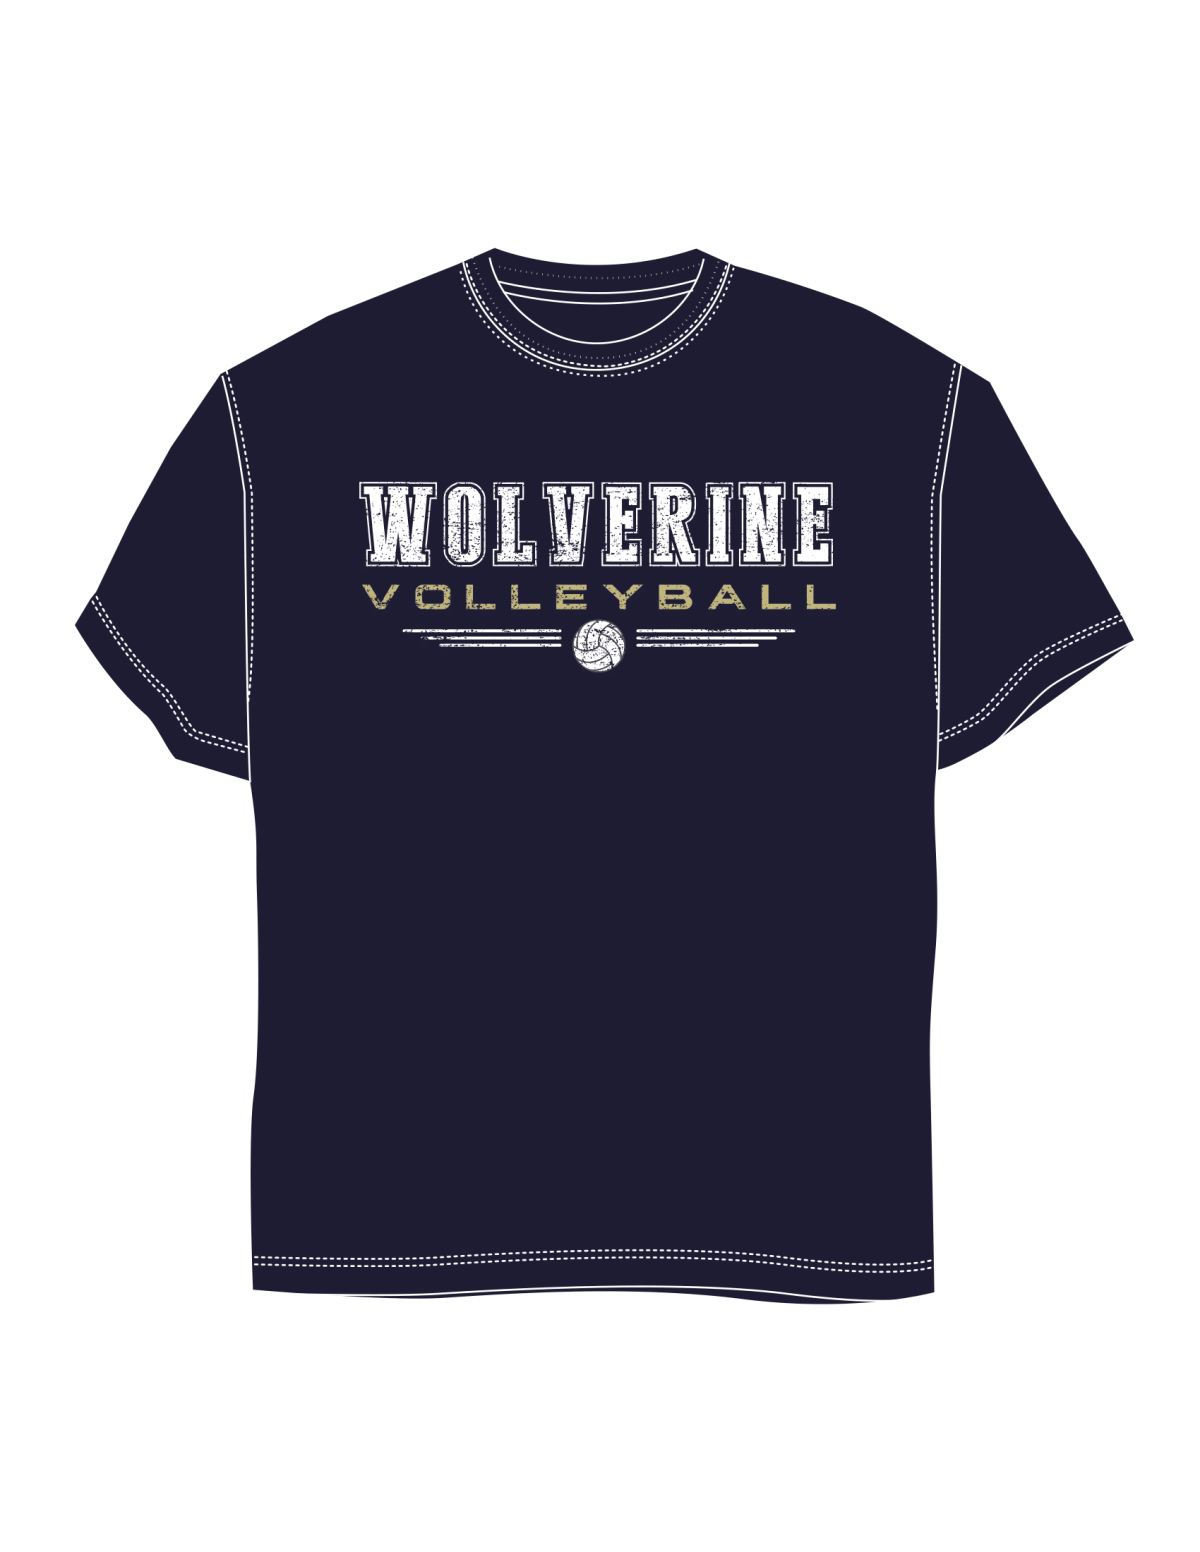 Bentonville West High School- Volleyball Spiritwear